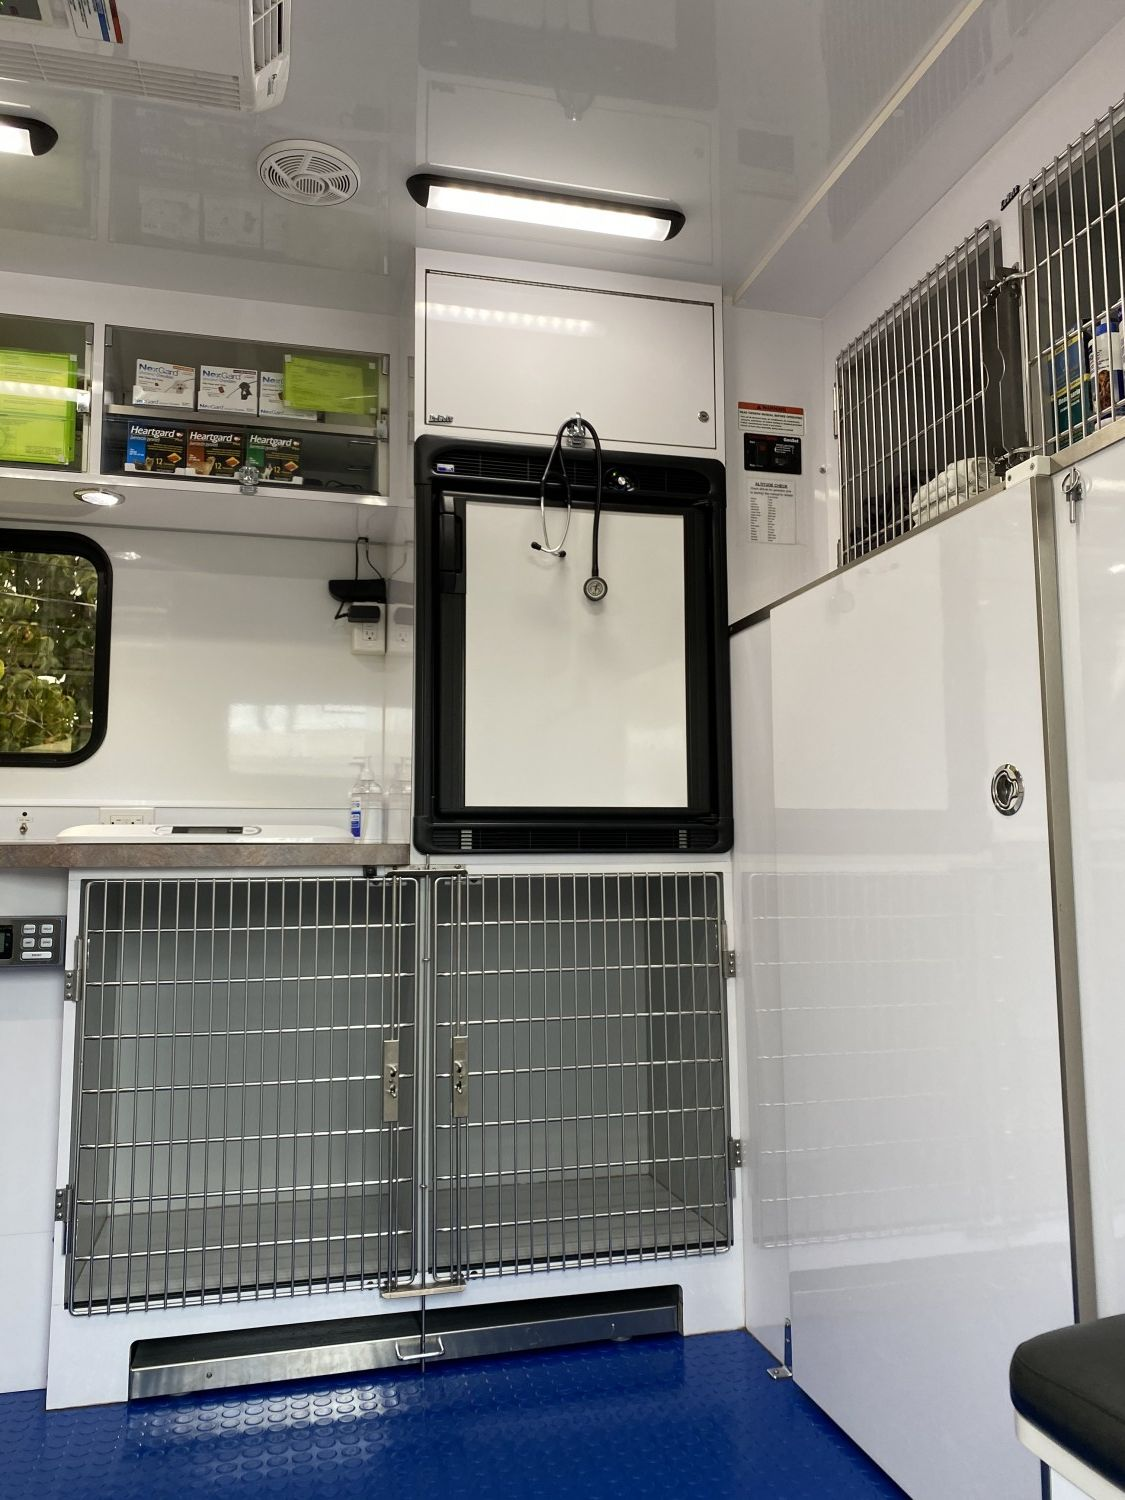 We're keeping your medicines cold and providing a cozy resting spot for your pets during their short visit inside Dale Veterinary Mobile Clinic - Windward Oahu. We care for all types of pets : guinea pigs, rabbits, cats, dogs, chinchillas, lizards, turtles, tortoises, chickens, ducks, sheep, goats...